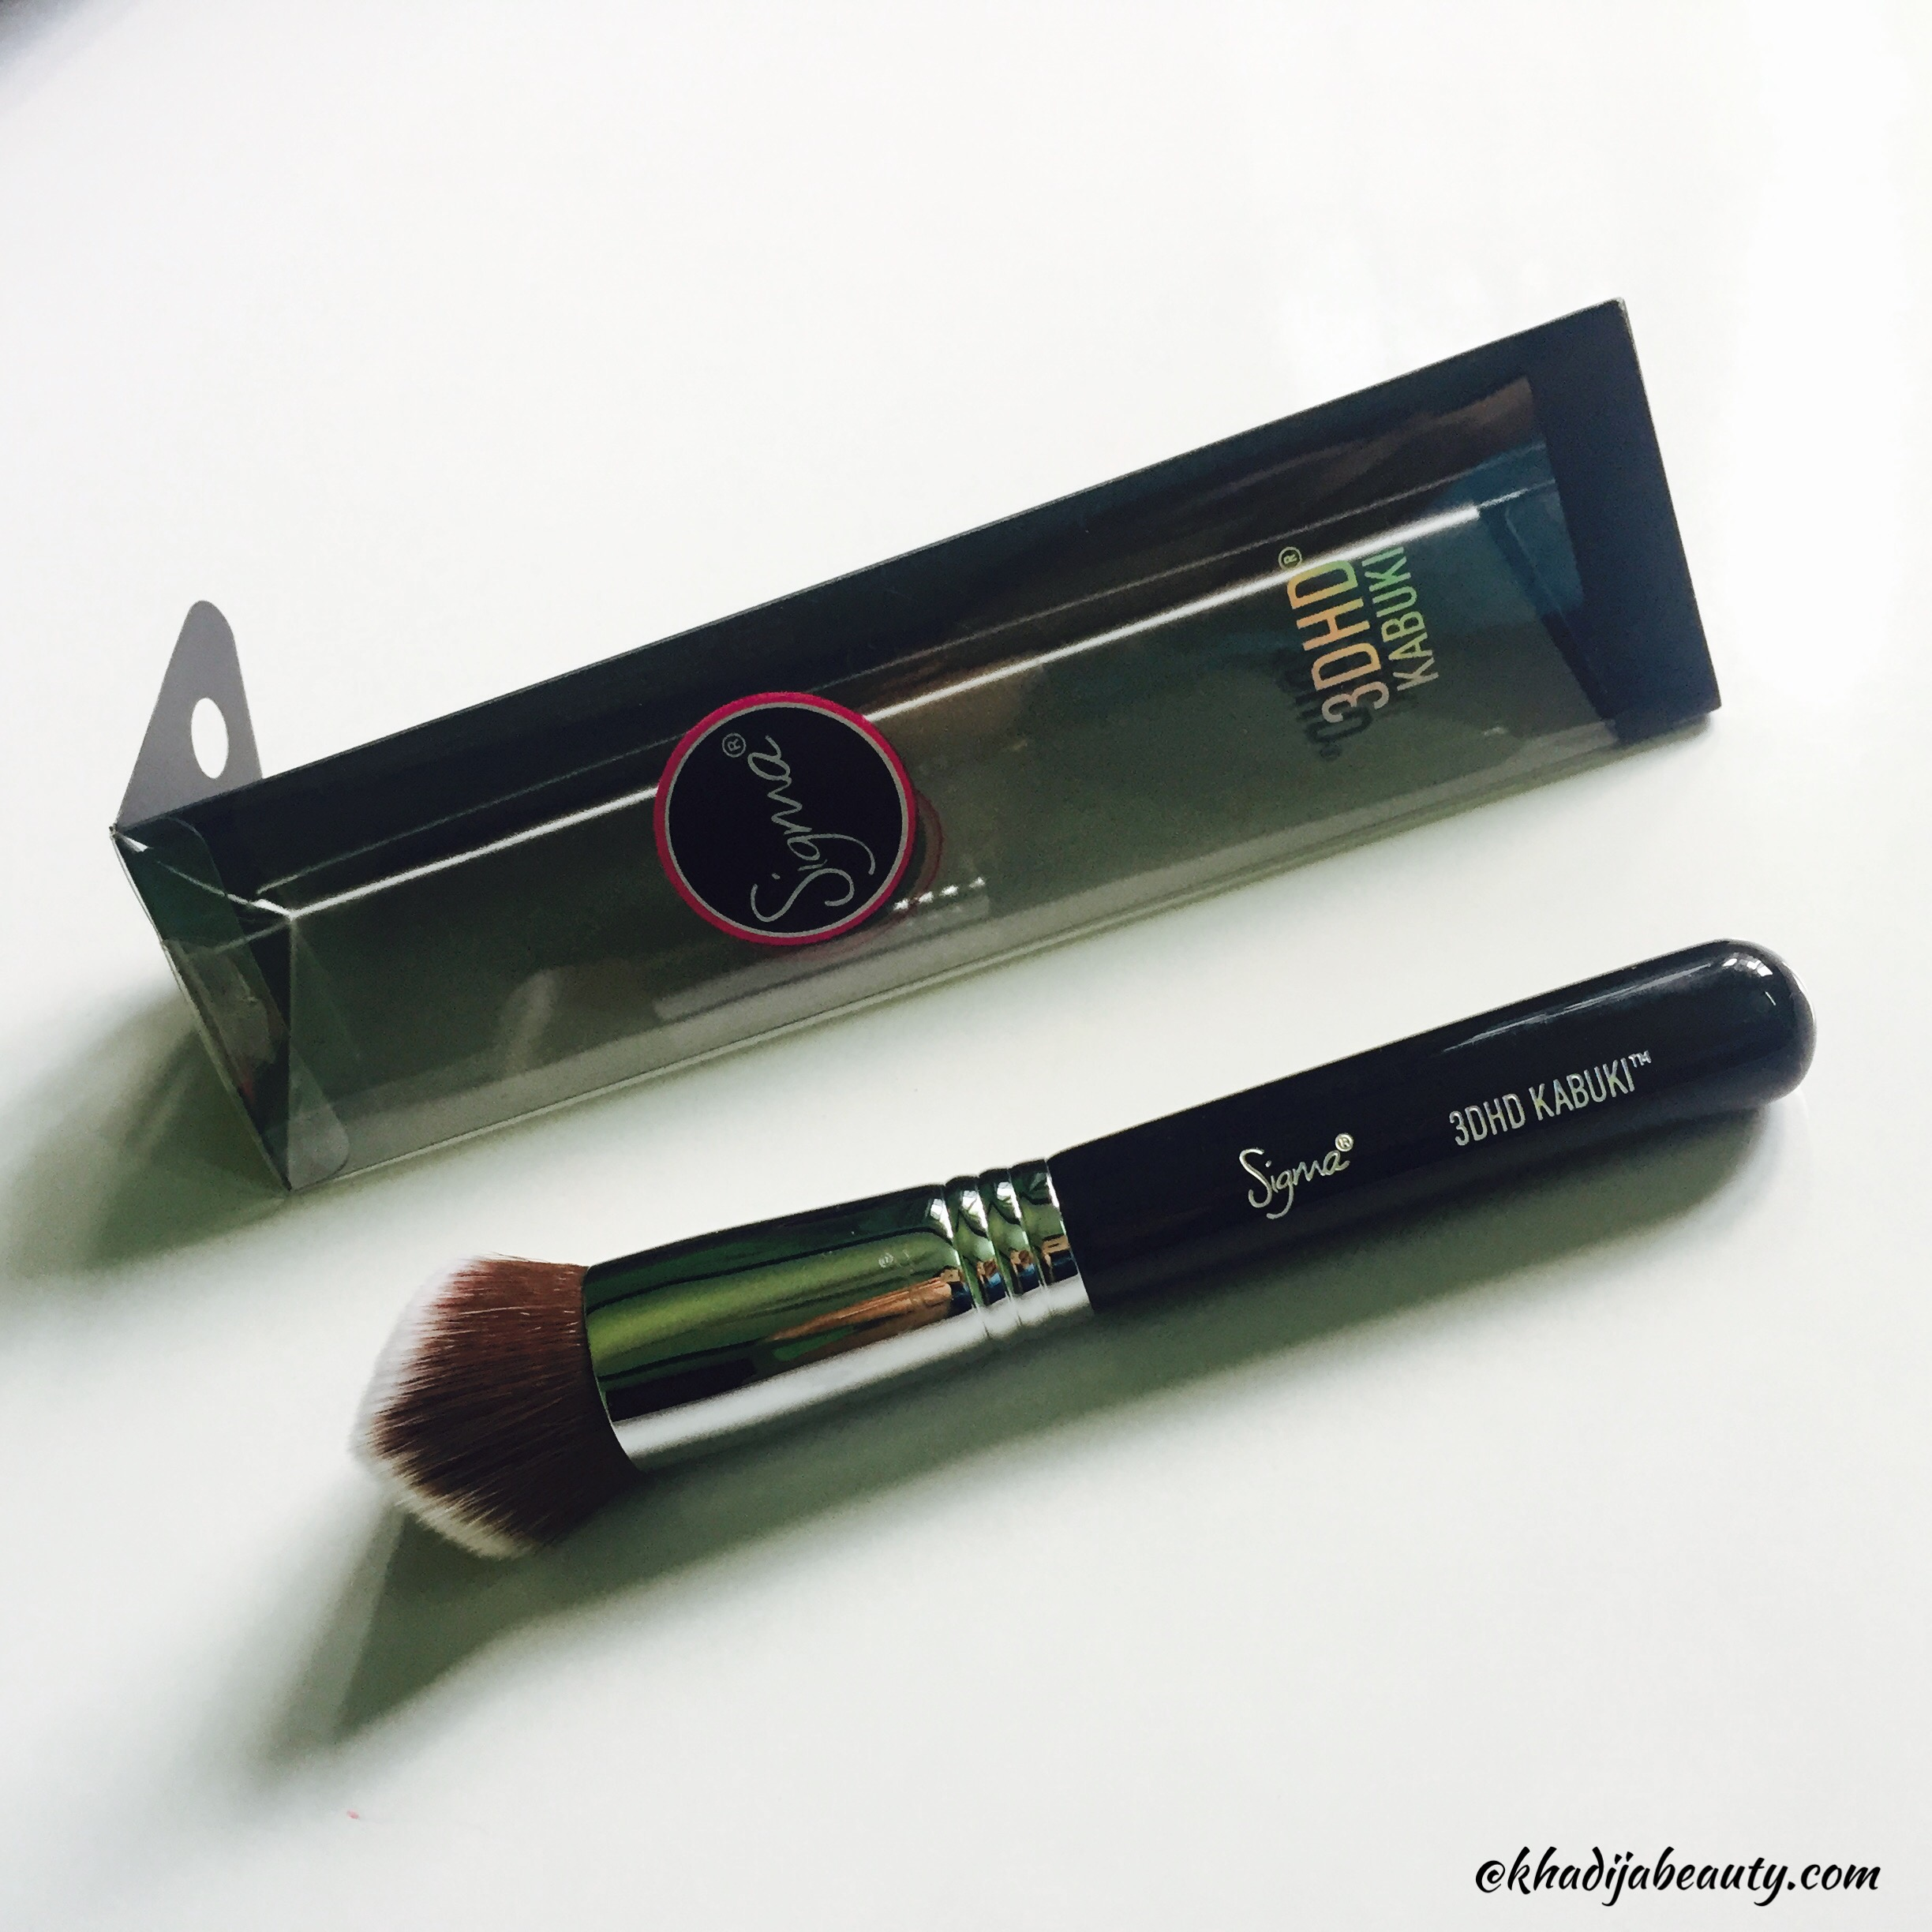 sigma 3DHD kabuki brushes, khadija beauty, sigma beauty